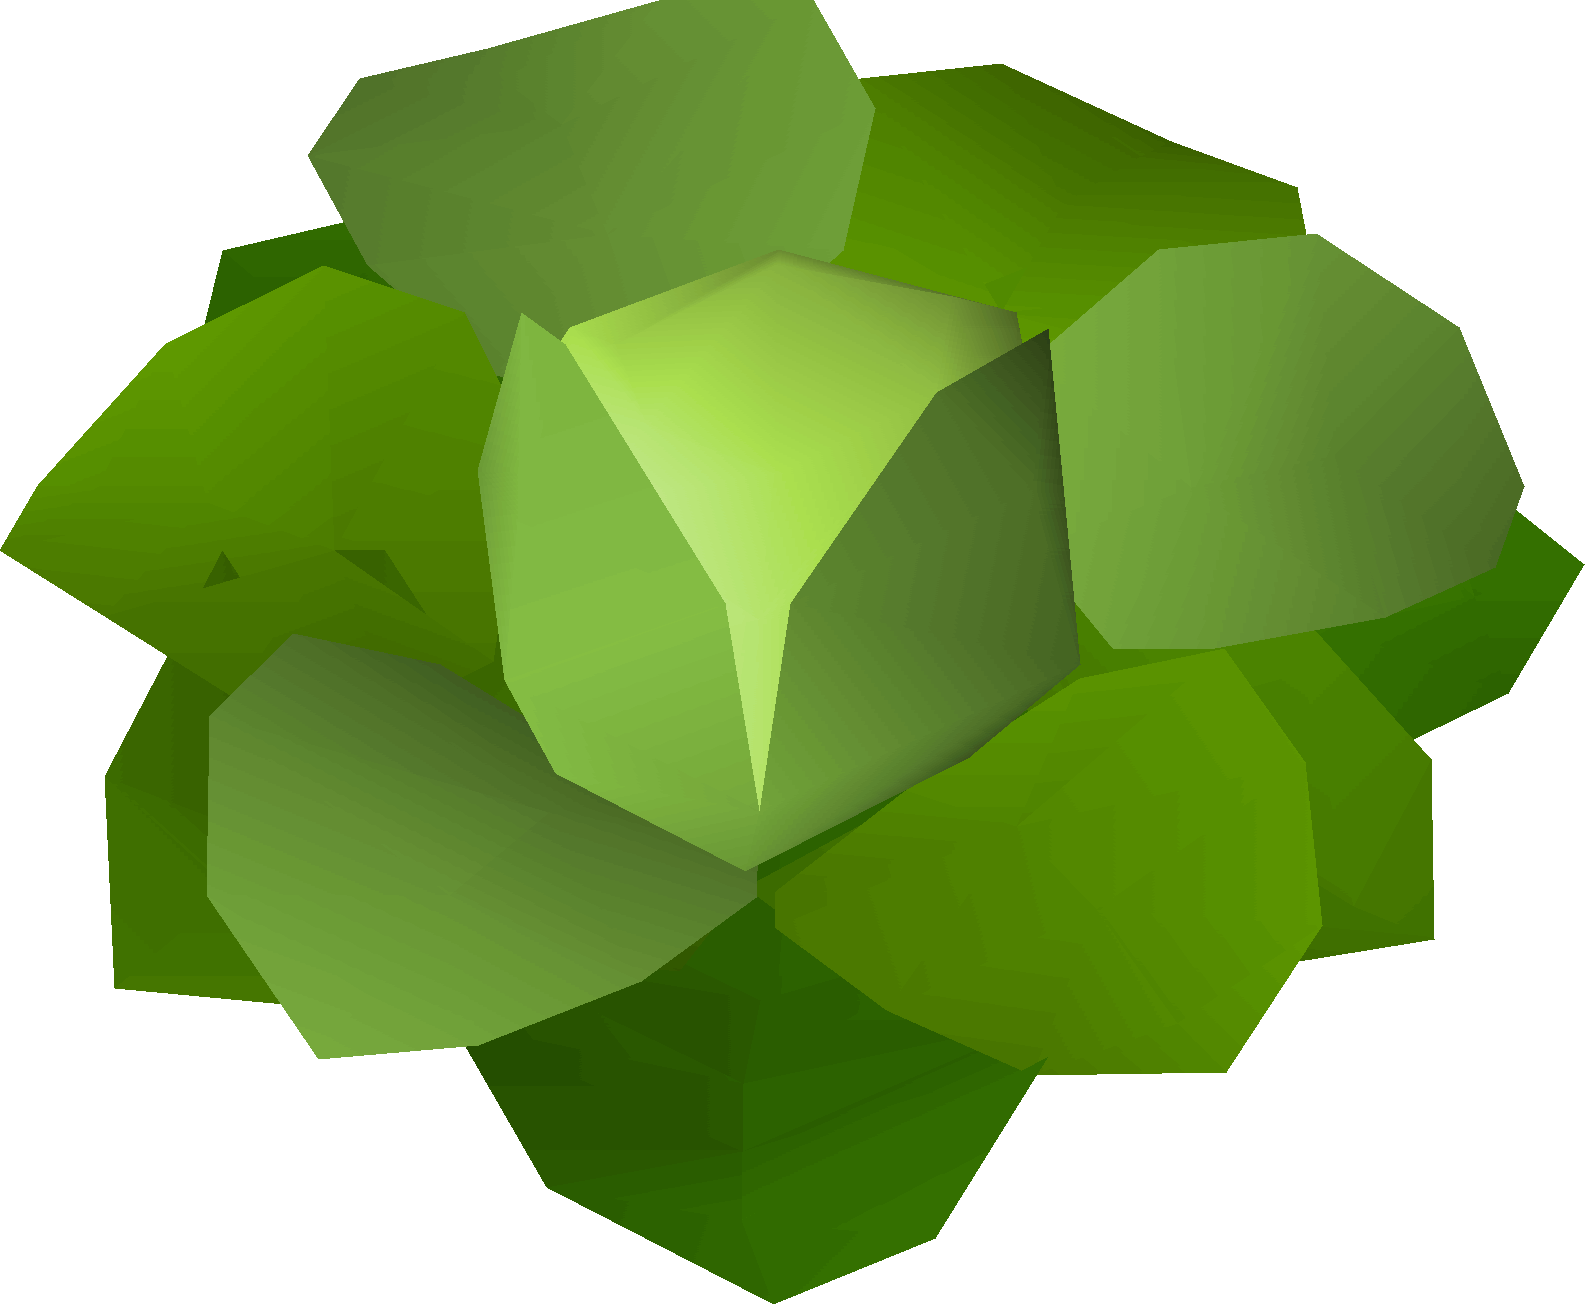 Cabbage clipart green cabbage. Old school runescape wiki